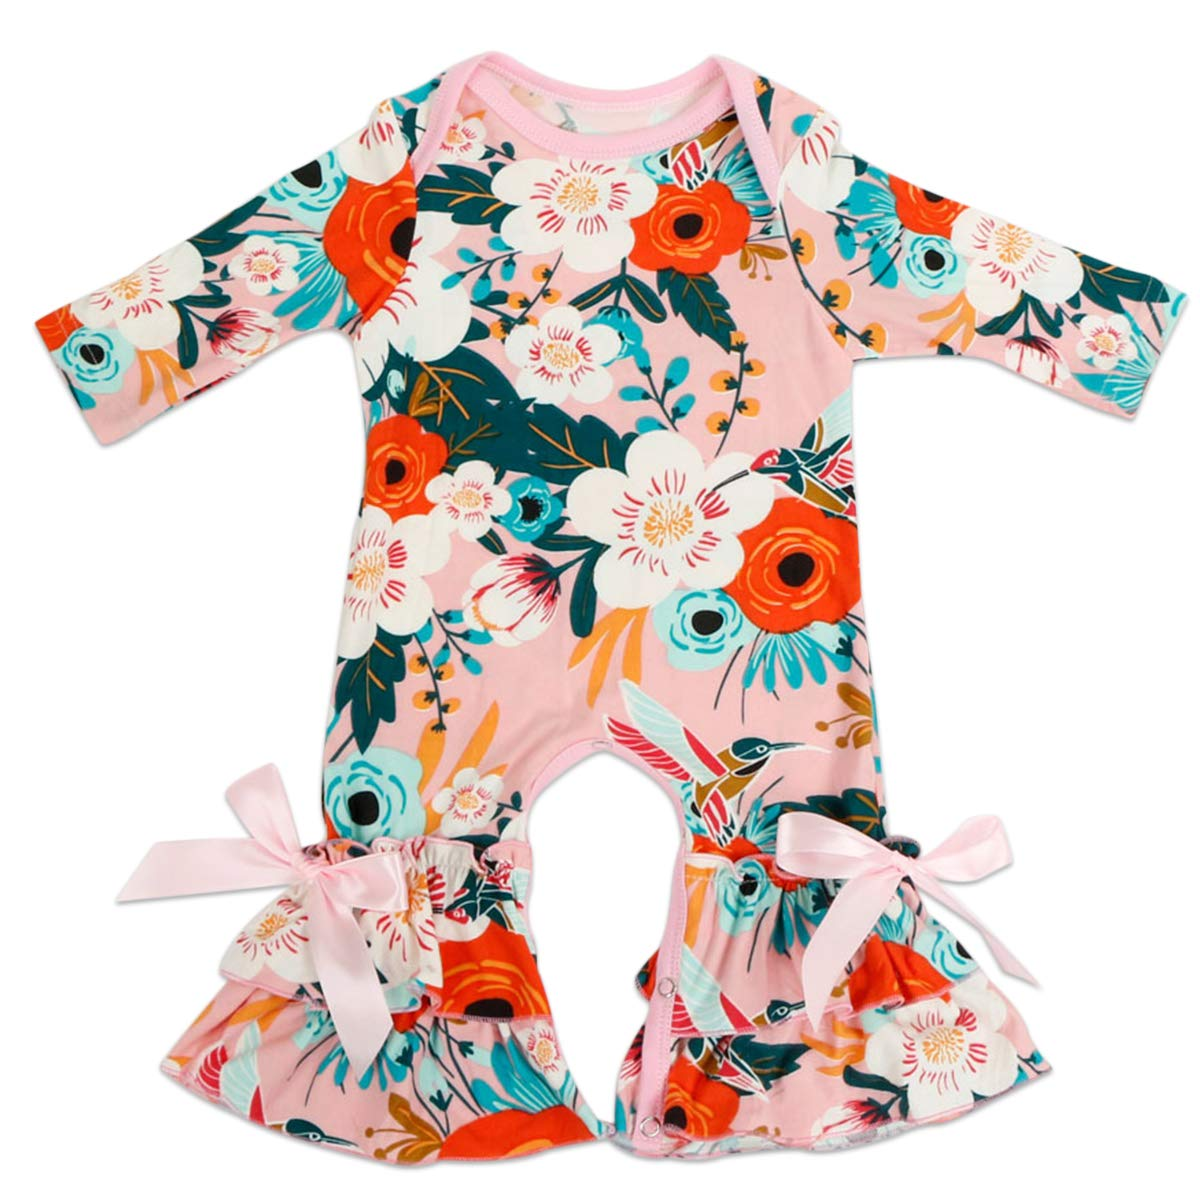 eab12a49c40 Amazon.com  FYMNSI Baby Girls Icing Ruffle Romper Floral Jumpsuit Long  Sleeve Pajamas Homewear Birthday Xmas Party Outfits  Clothing